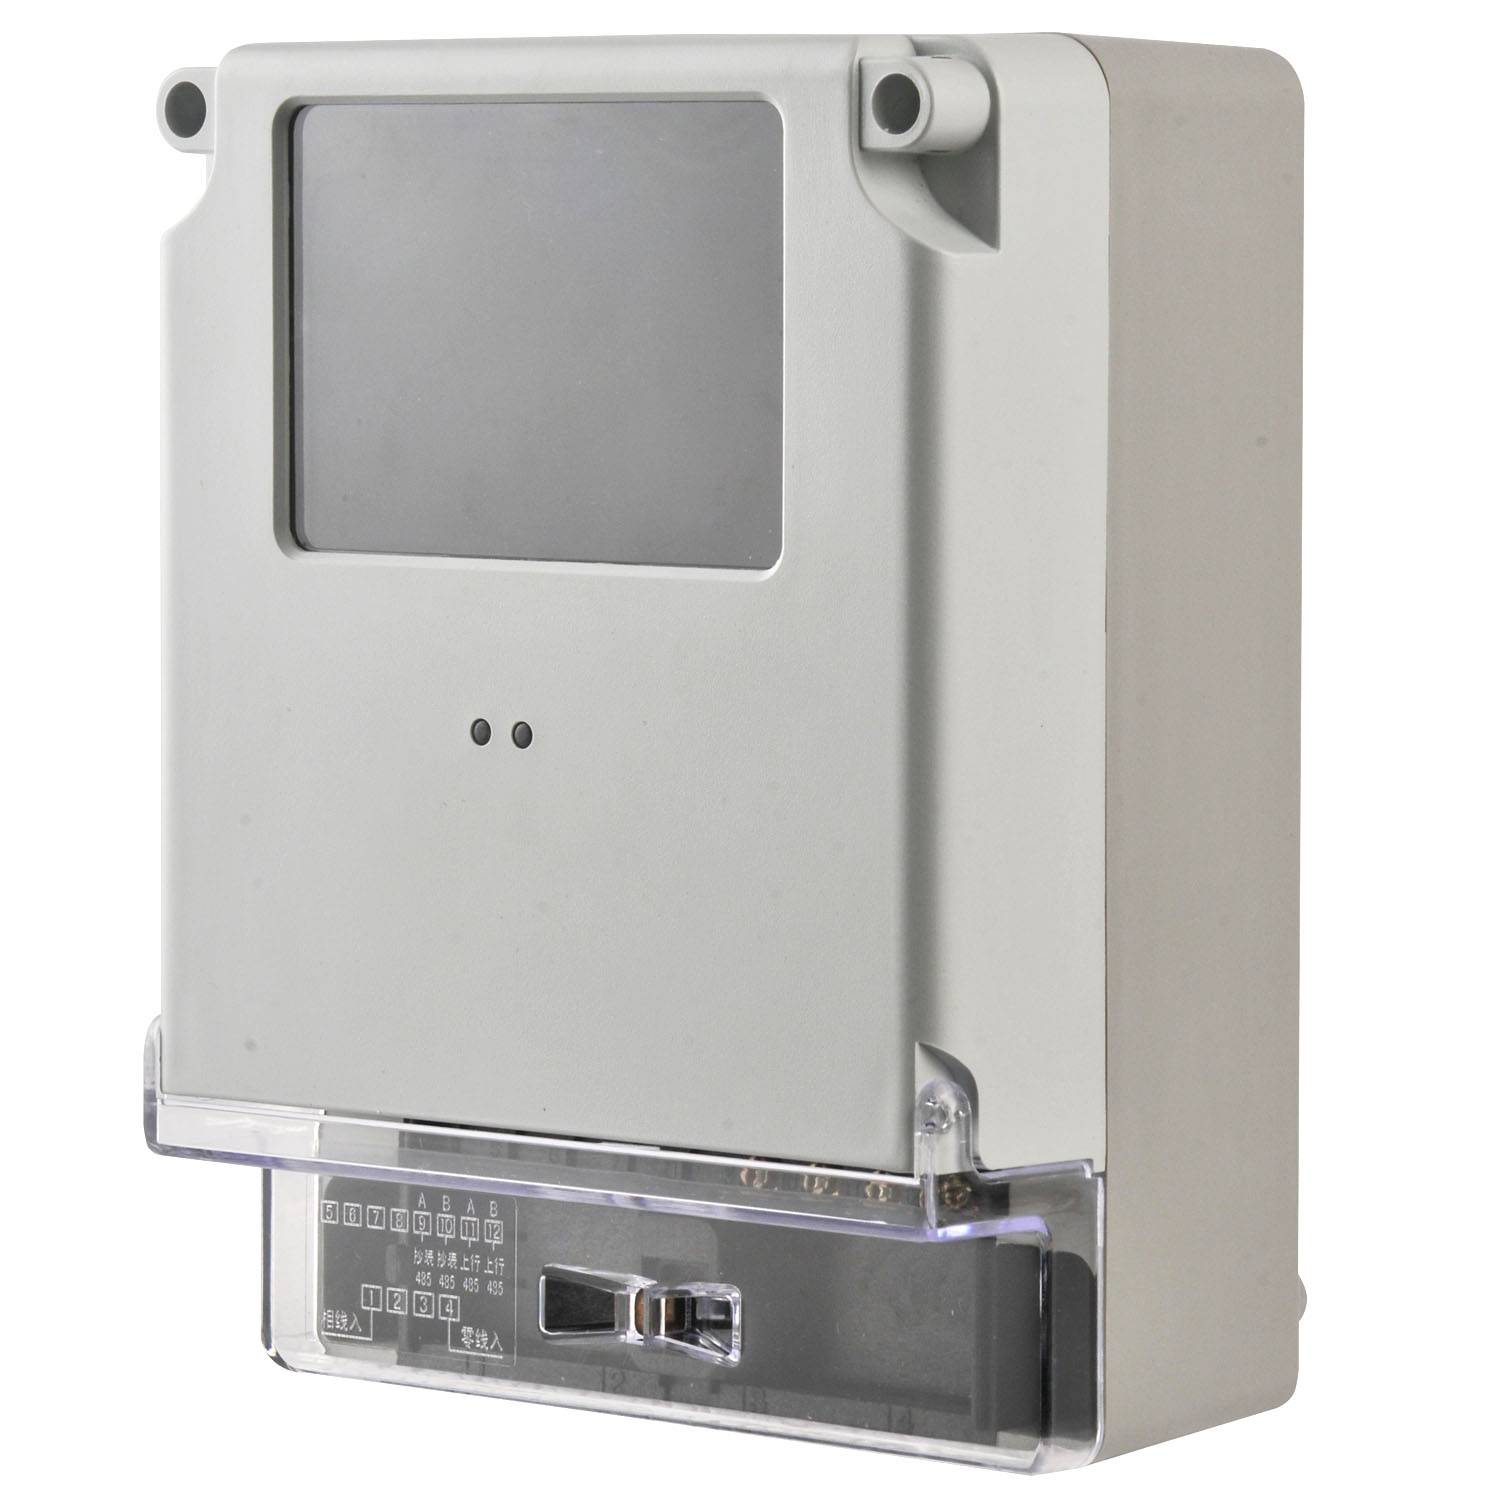 Customized Precision Collector Enclosure (C047-1)The high overload